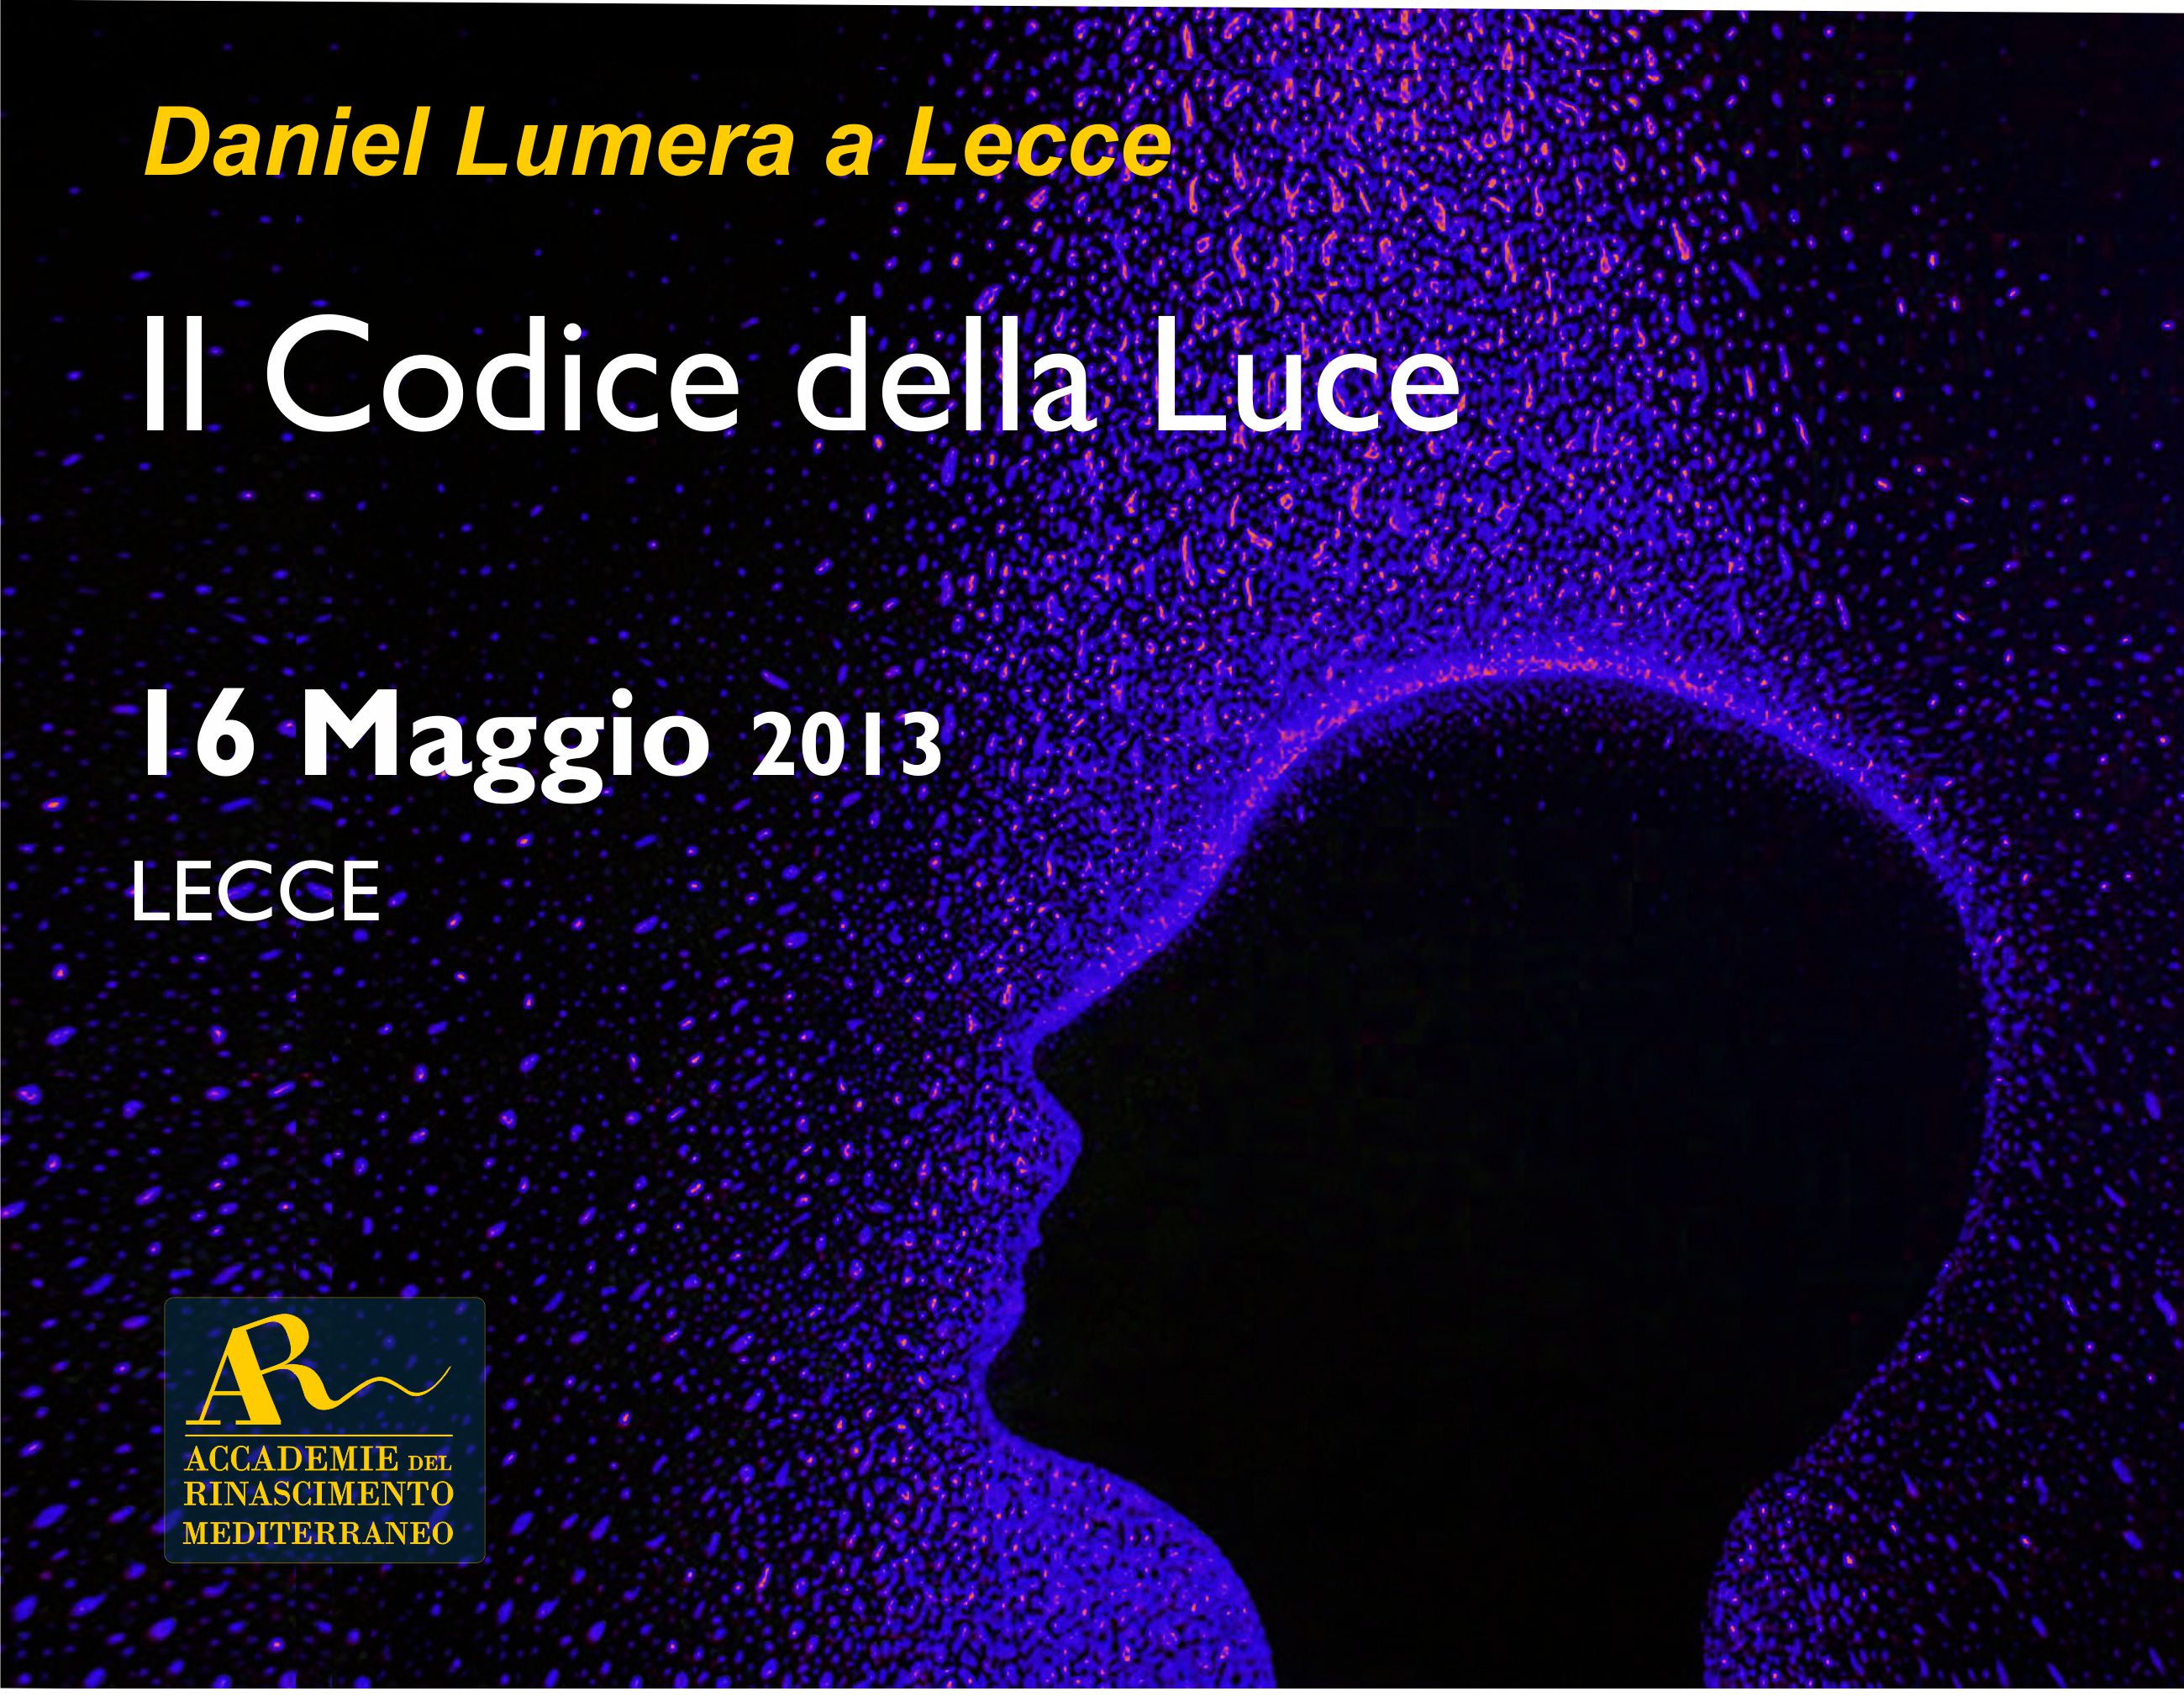 Il Codice della Luce